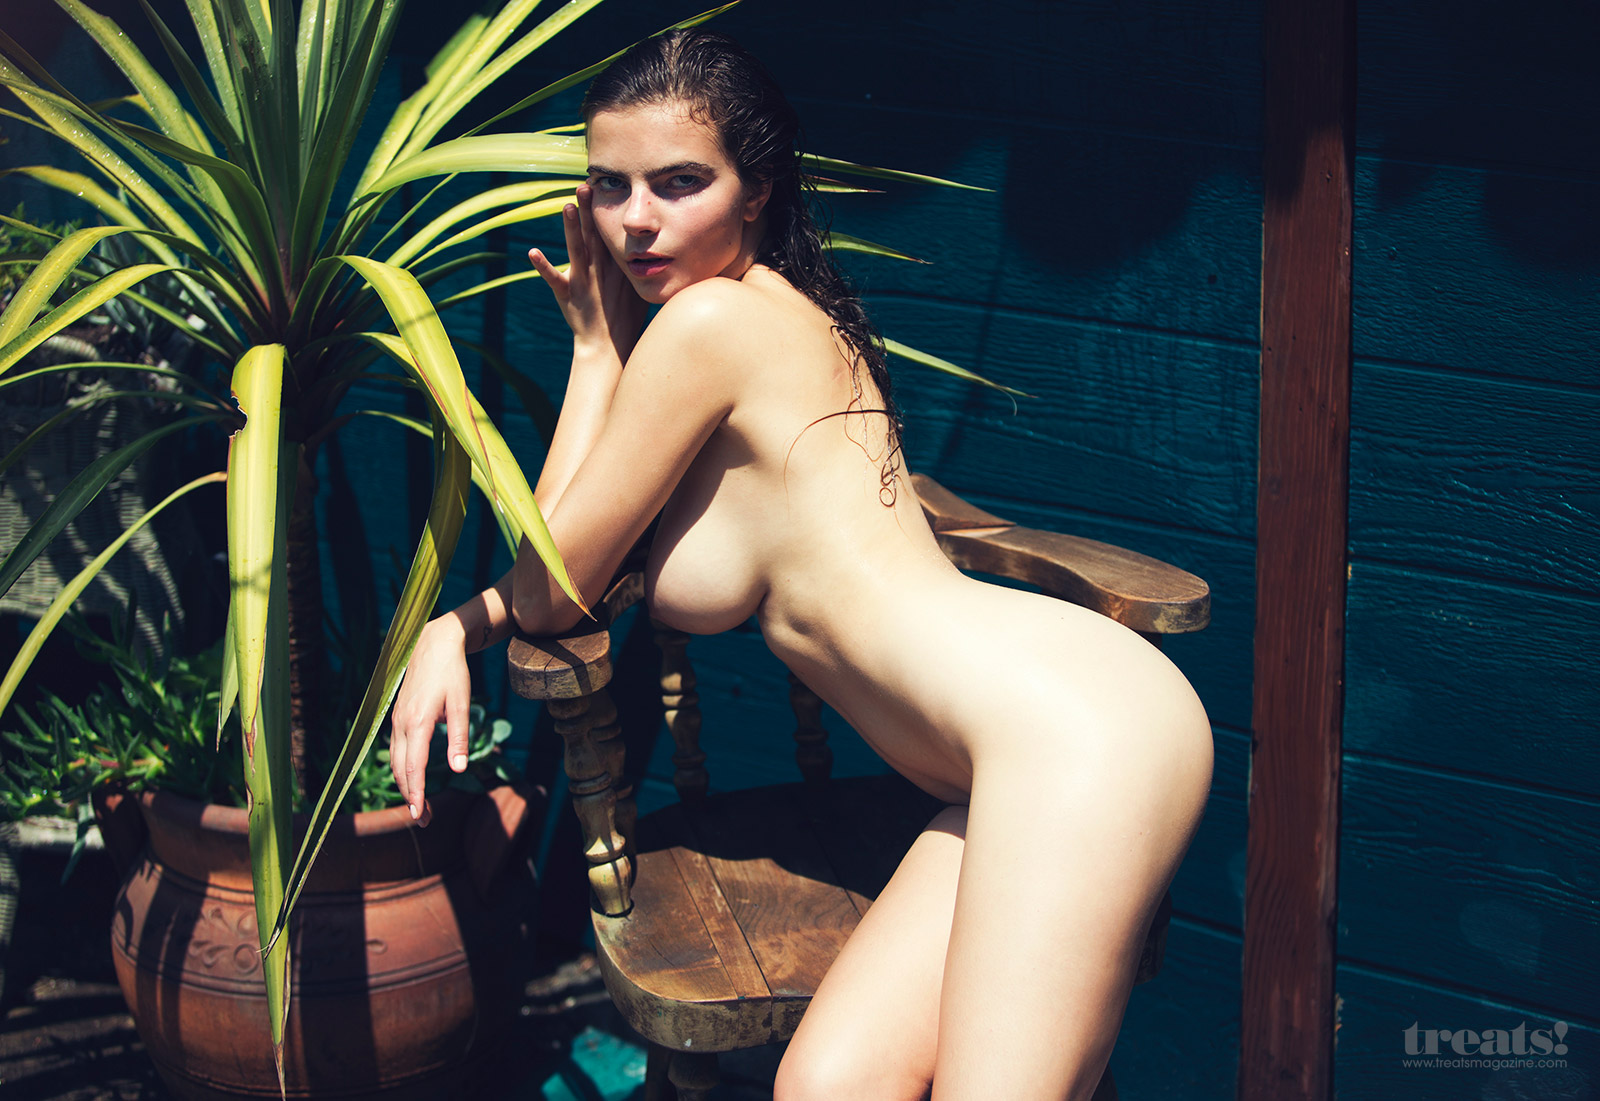 David Bellemere - Alina Alluykina - Treats Magazine_10